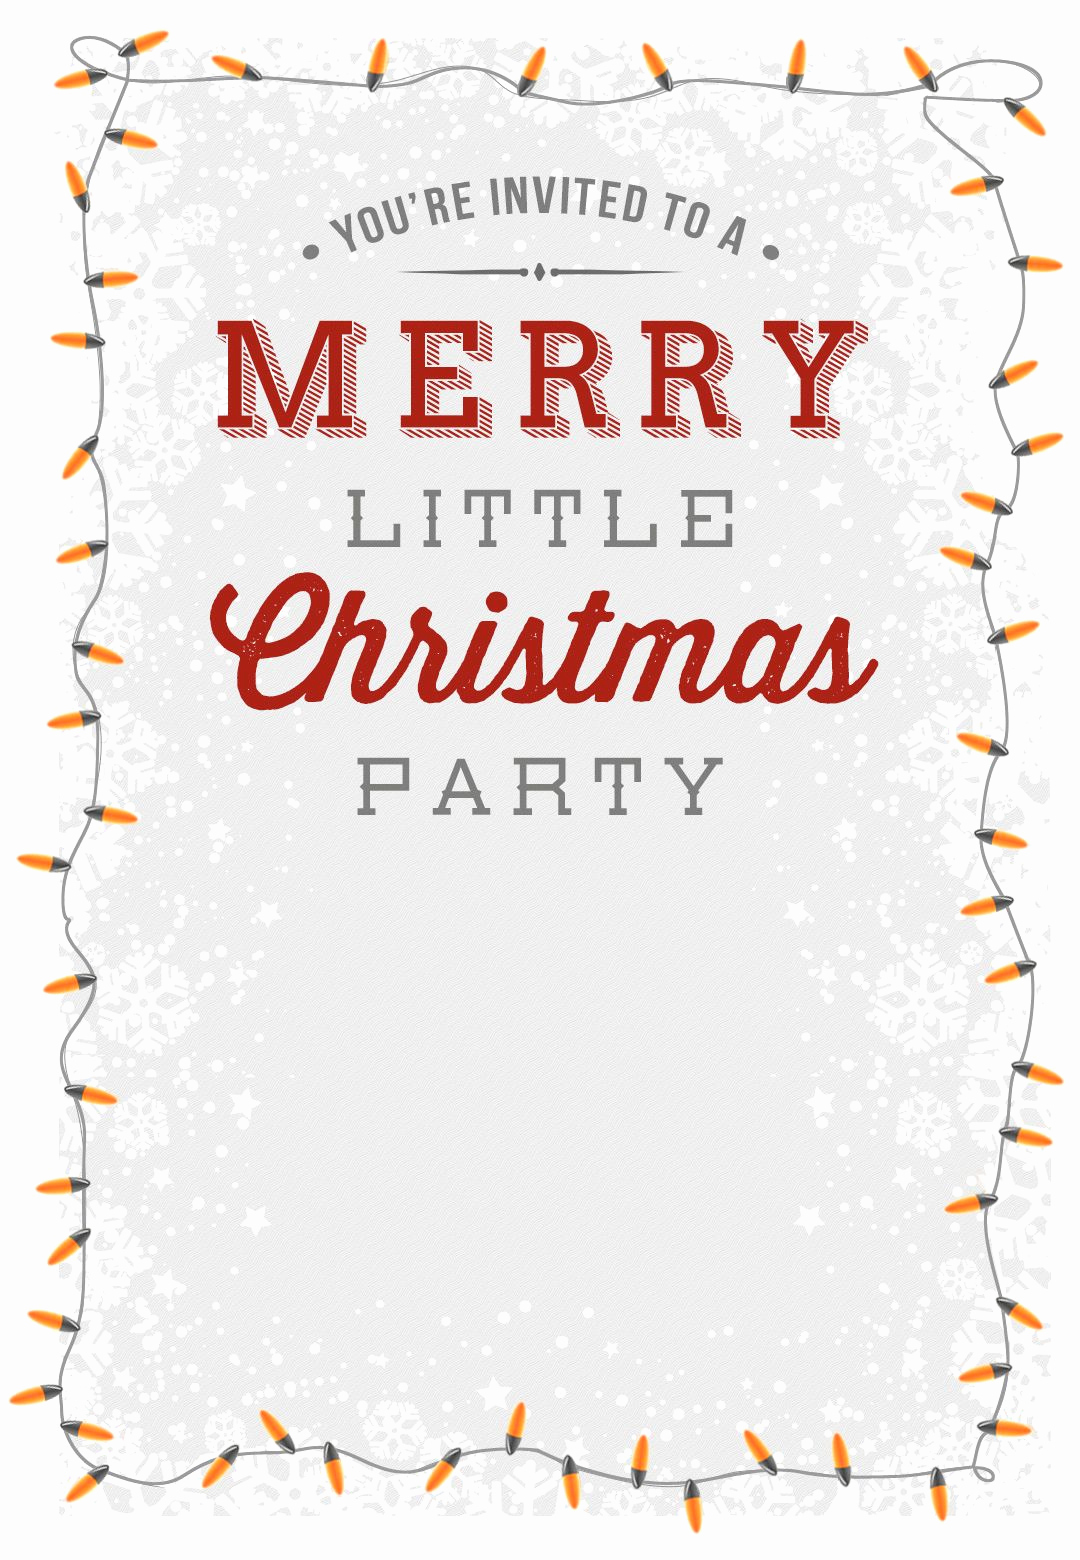 Christmas Party Invitation Template Fresh A Merry Little Party Free Printable Christmas Invitation